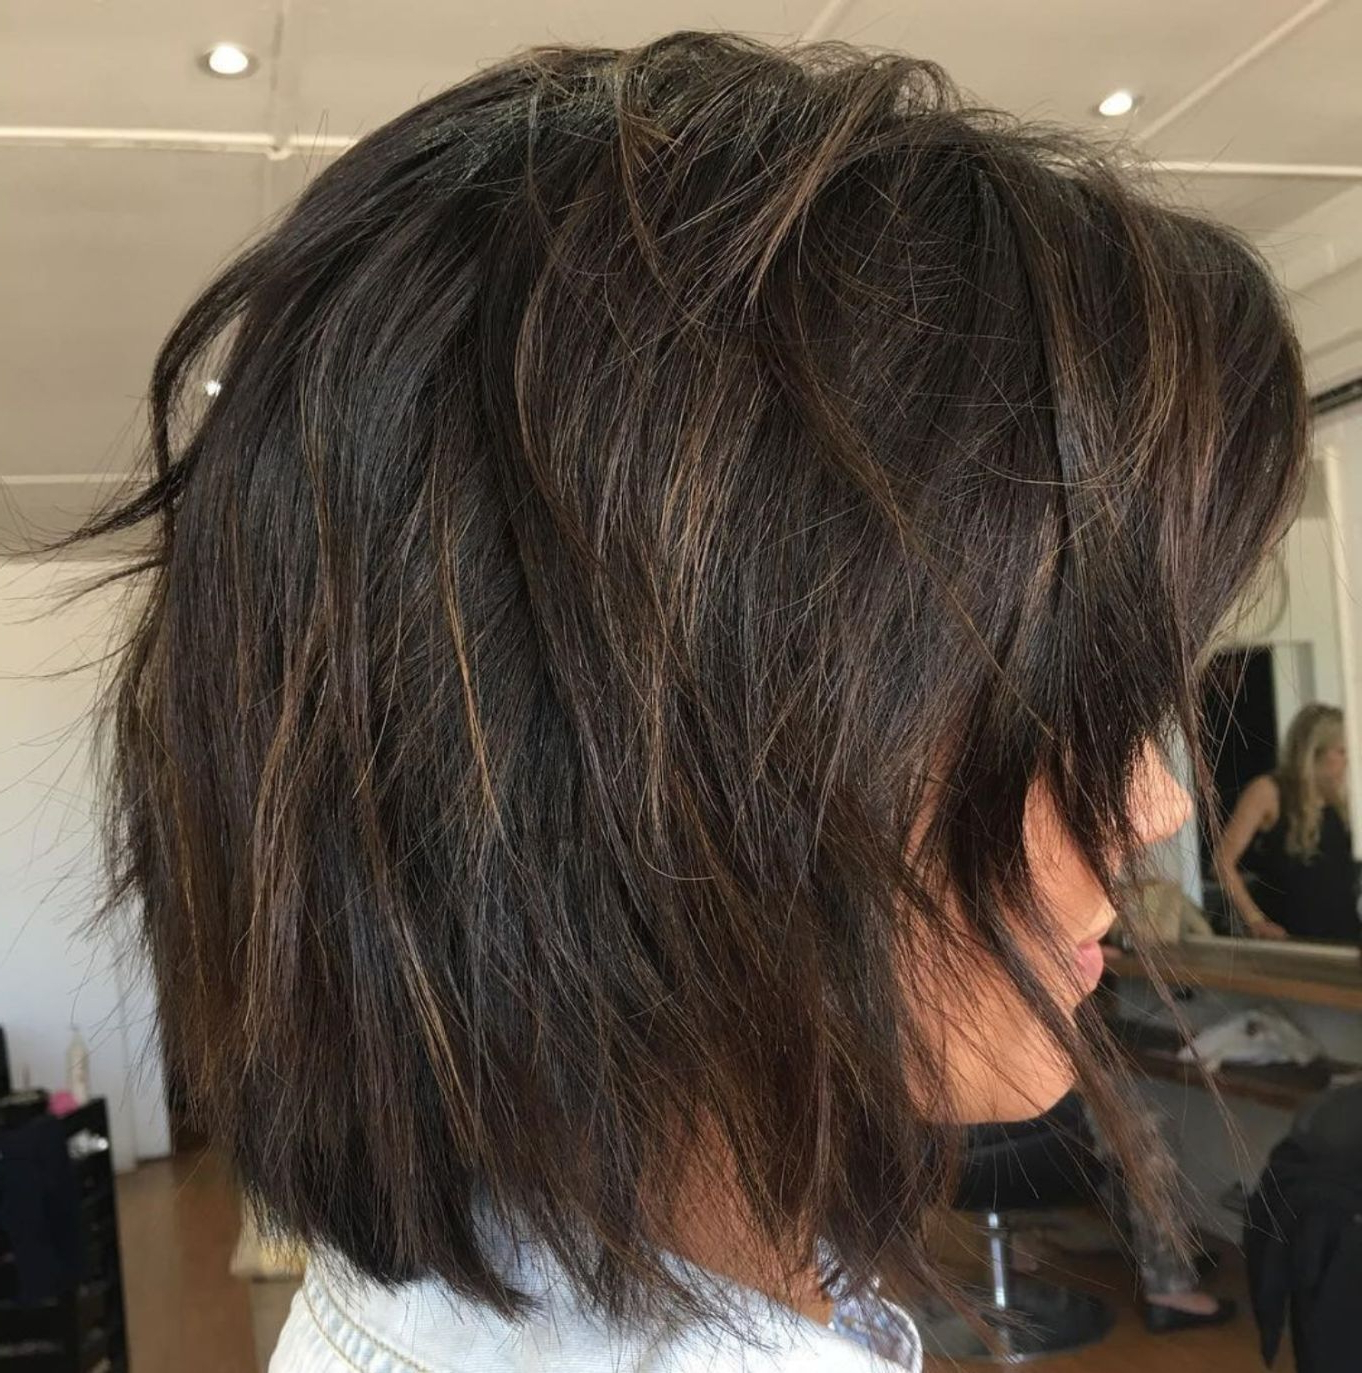 60 Layered Bob Styles: Modern Haircuts With Layers For Any Pertaining To Short Shaggy Brunette Bob Hairstyles (View 5 of 20)